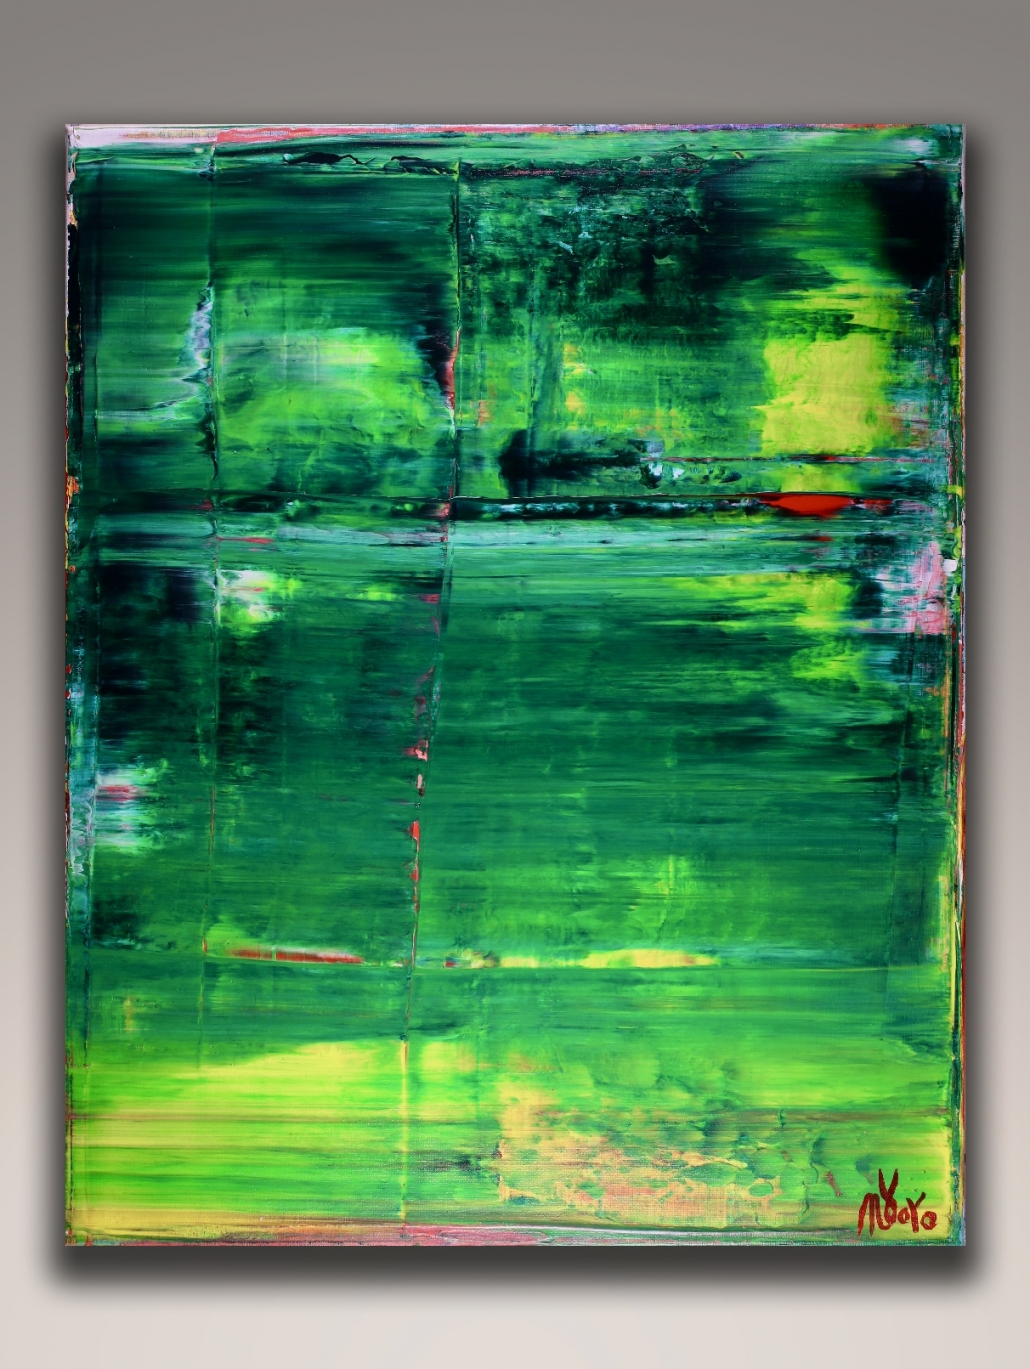 SOLD - Emerald Garden (2018) Acrylic painting by Nestor Toro